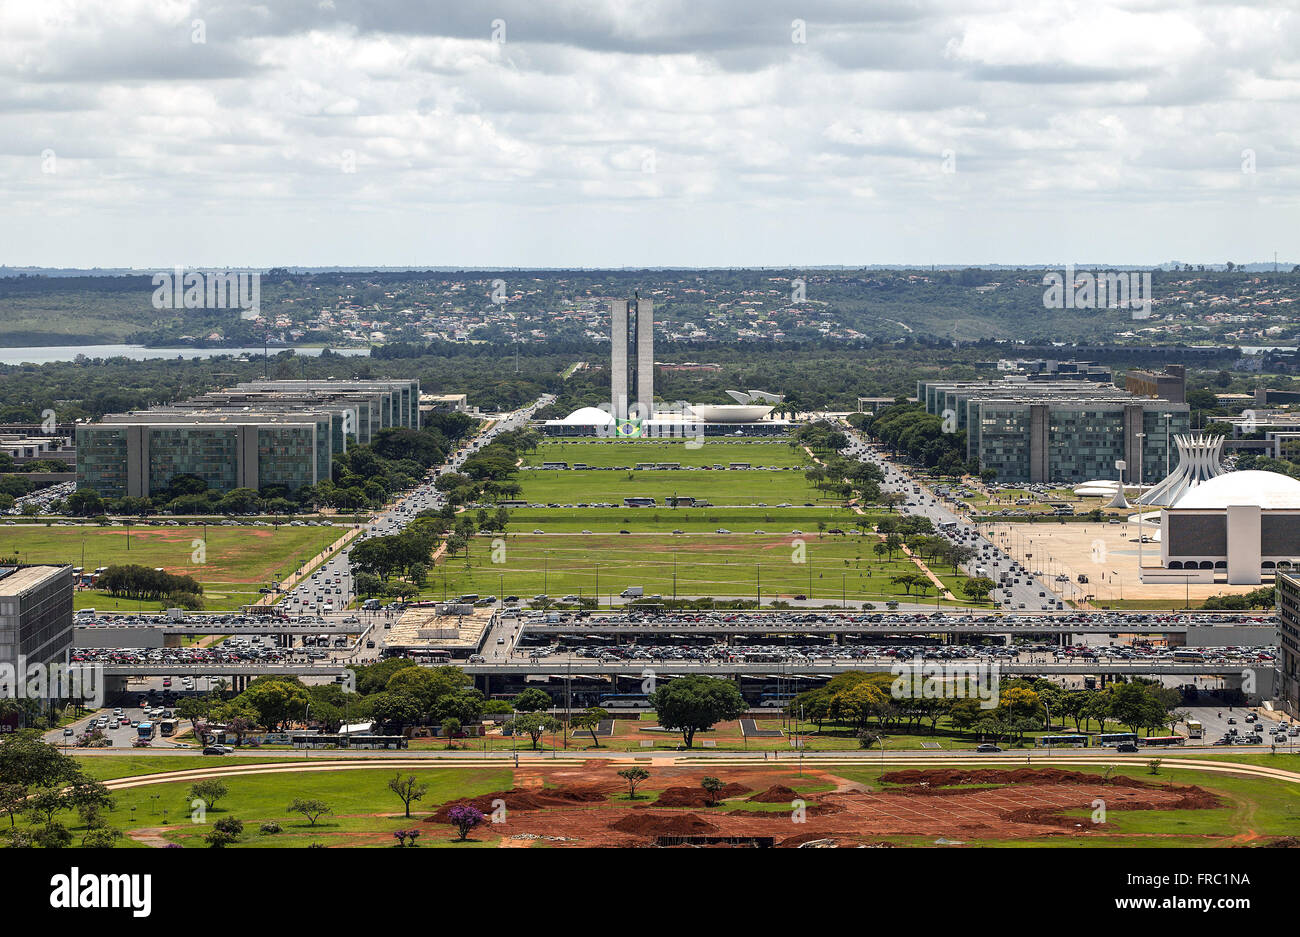 Top view of the Monumental Axis from the TV Tower - Stock Image